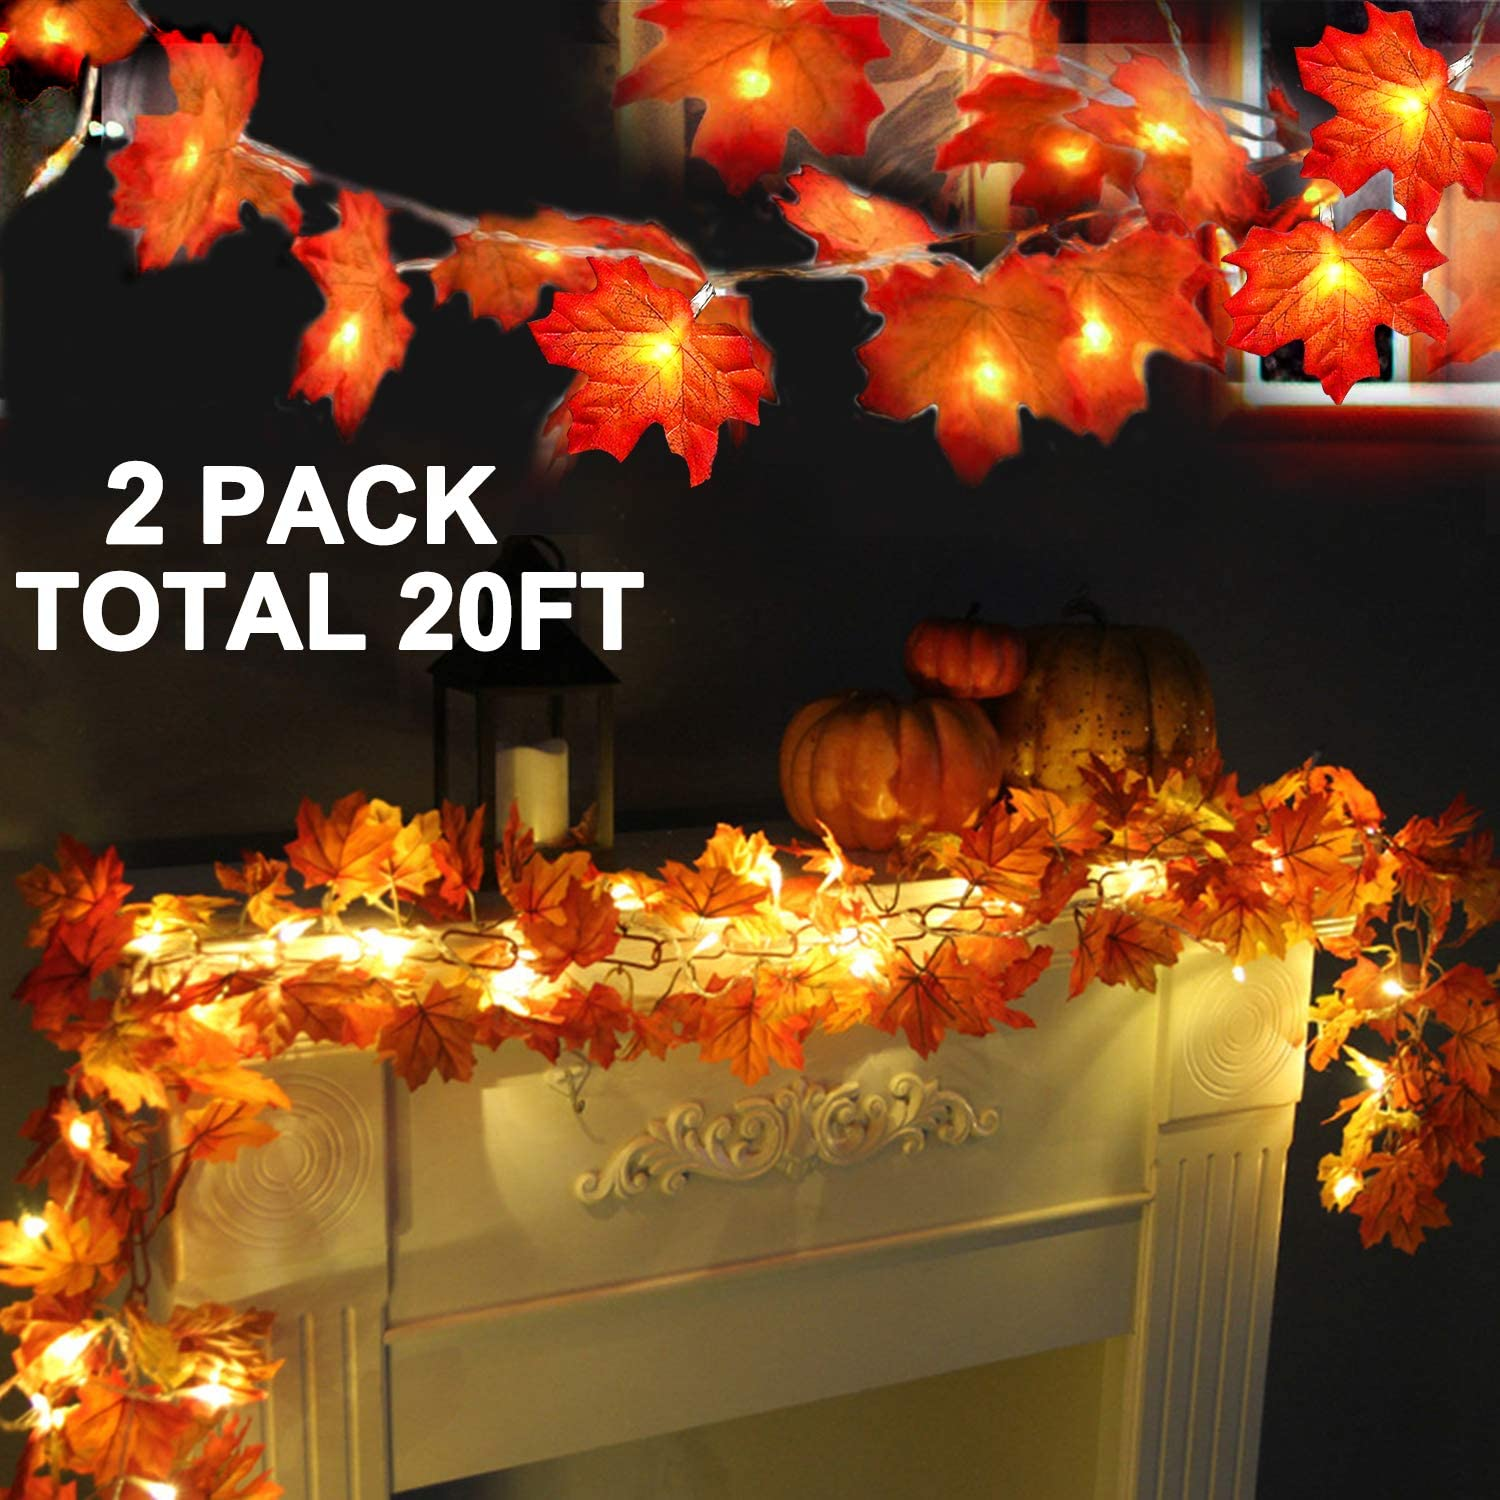 2 Pack Thanksgiving Lights Fall Maple Leaves String Lights Thanksgiving Decorations, Total 20 Ft & 40 LED Maple Leaves Lights Battery Operated Fall Lights for Holiday Autumn Garland Home Indoor Decor